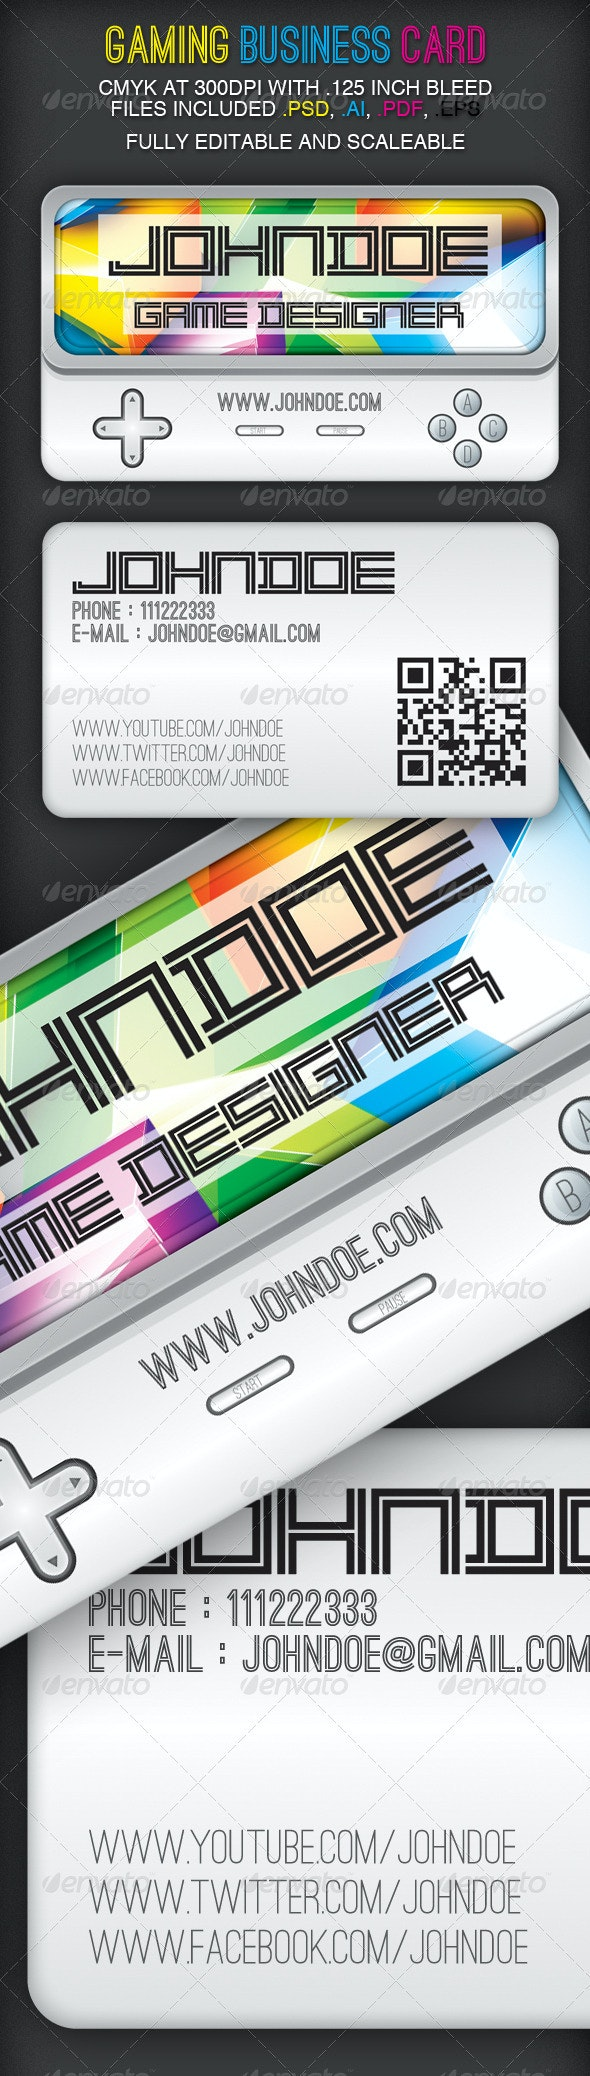 Gaming Business Card Design - Creative Business Cards